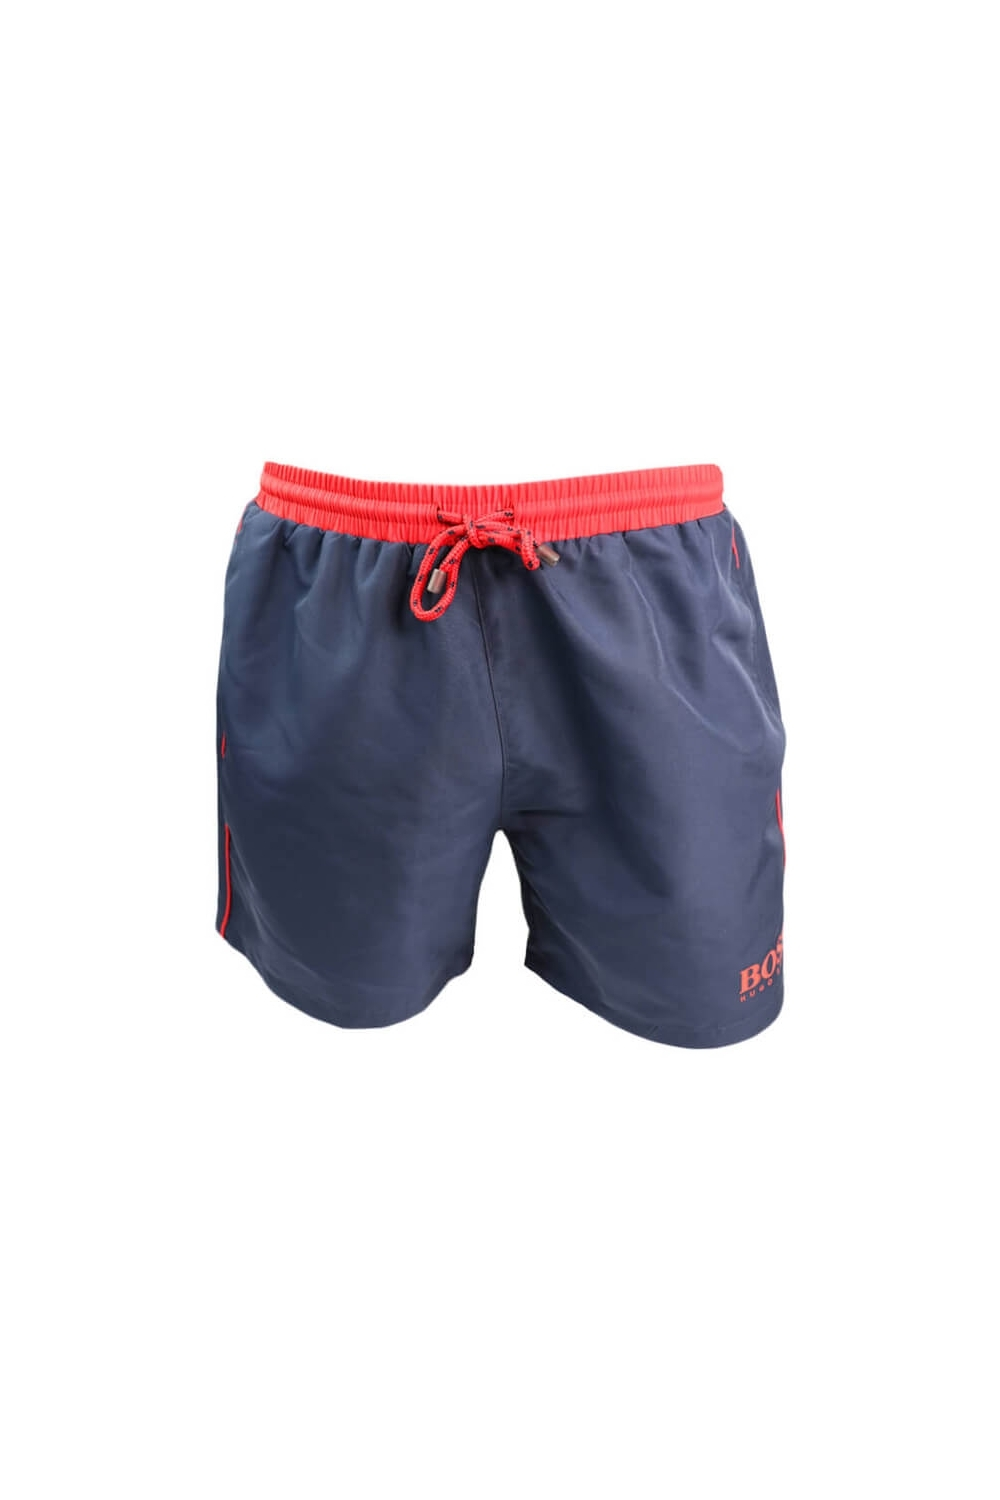 62006b45 Hugo Boss Black Starfish Swim Shorts Navy/red - Clothing from ...